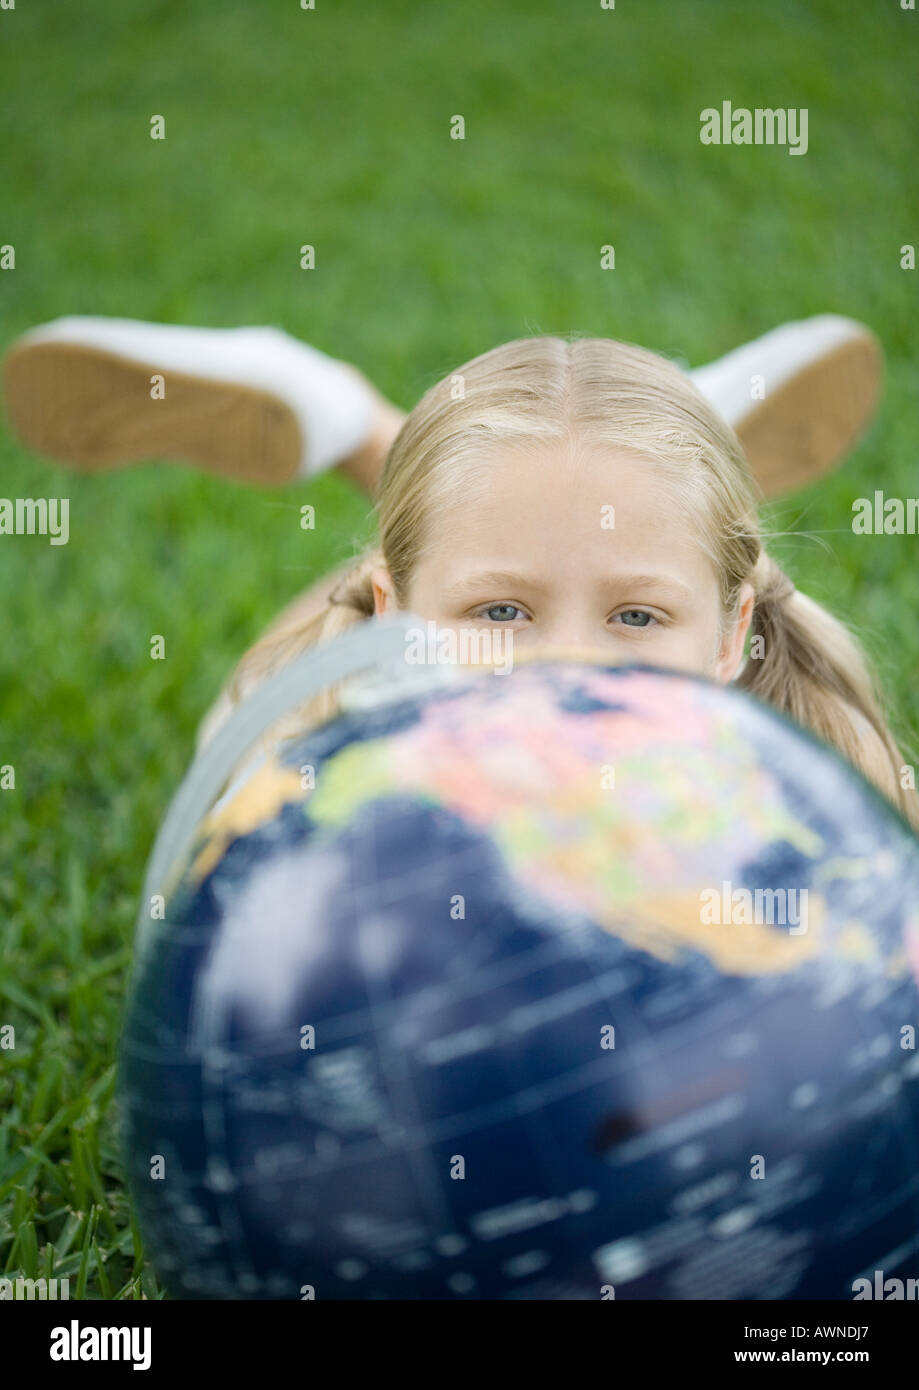 Girl lying on grass with globe, looking at camera - Stock Image